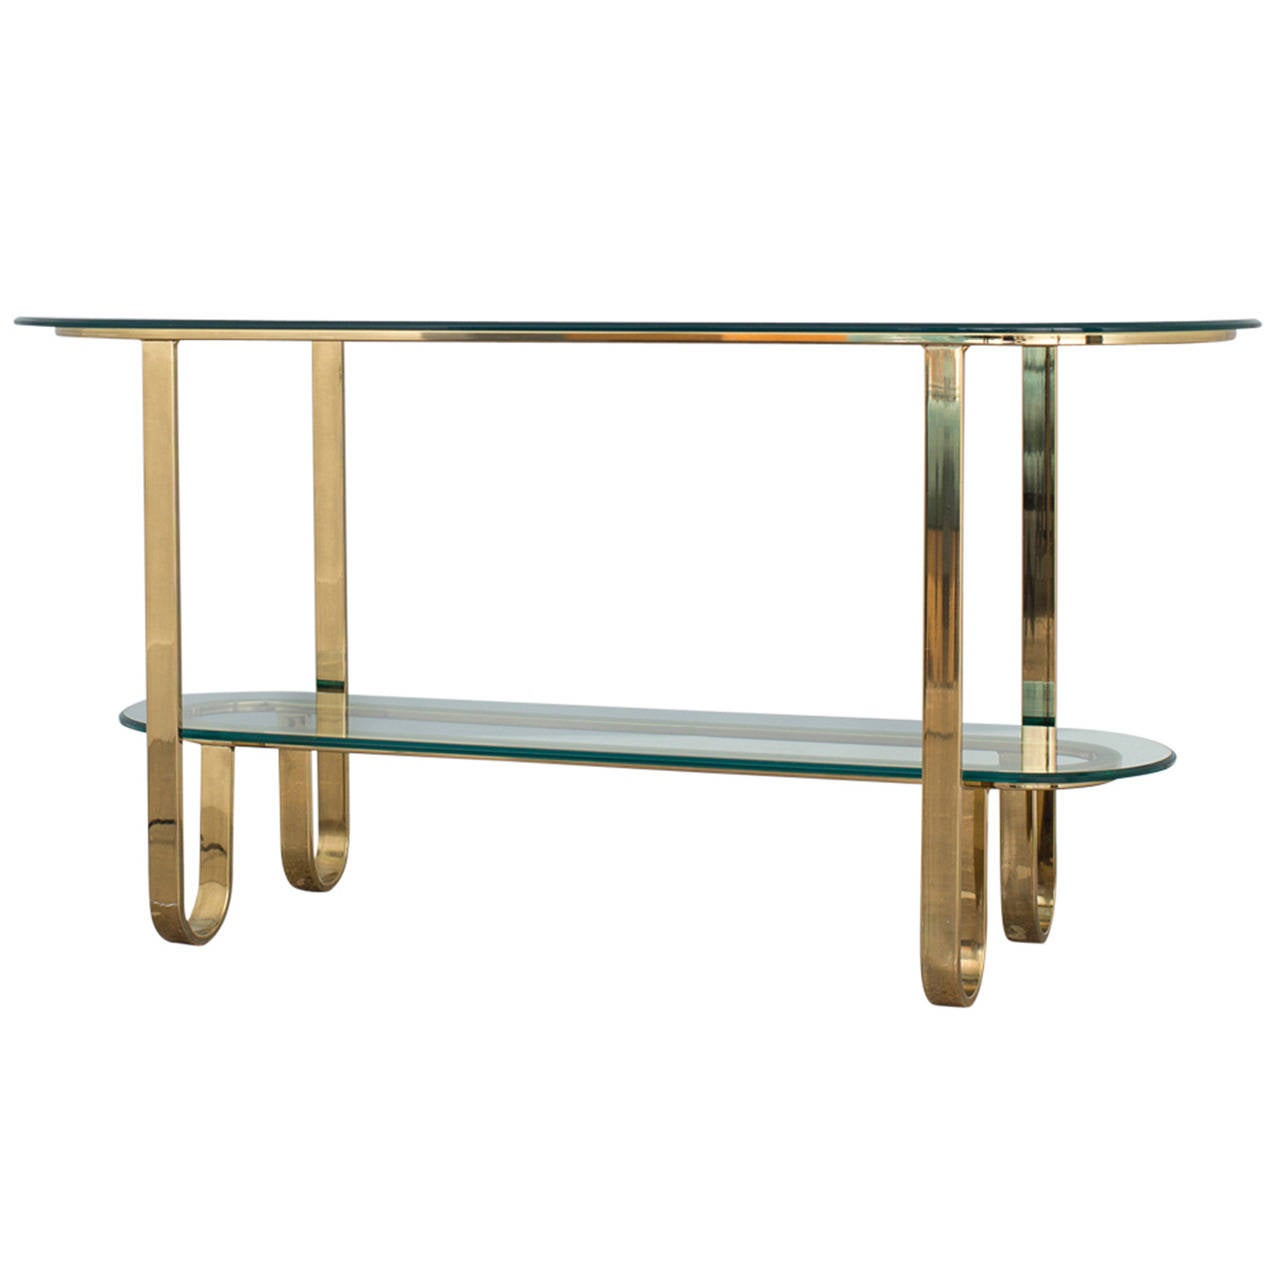 Design Institute Of America Brass And Glass Console Table 1